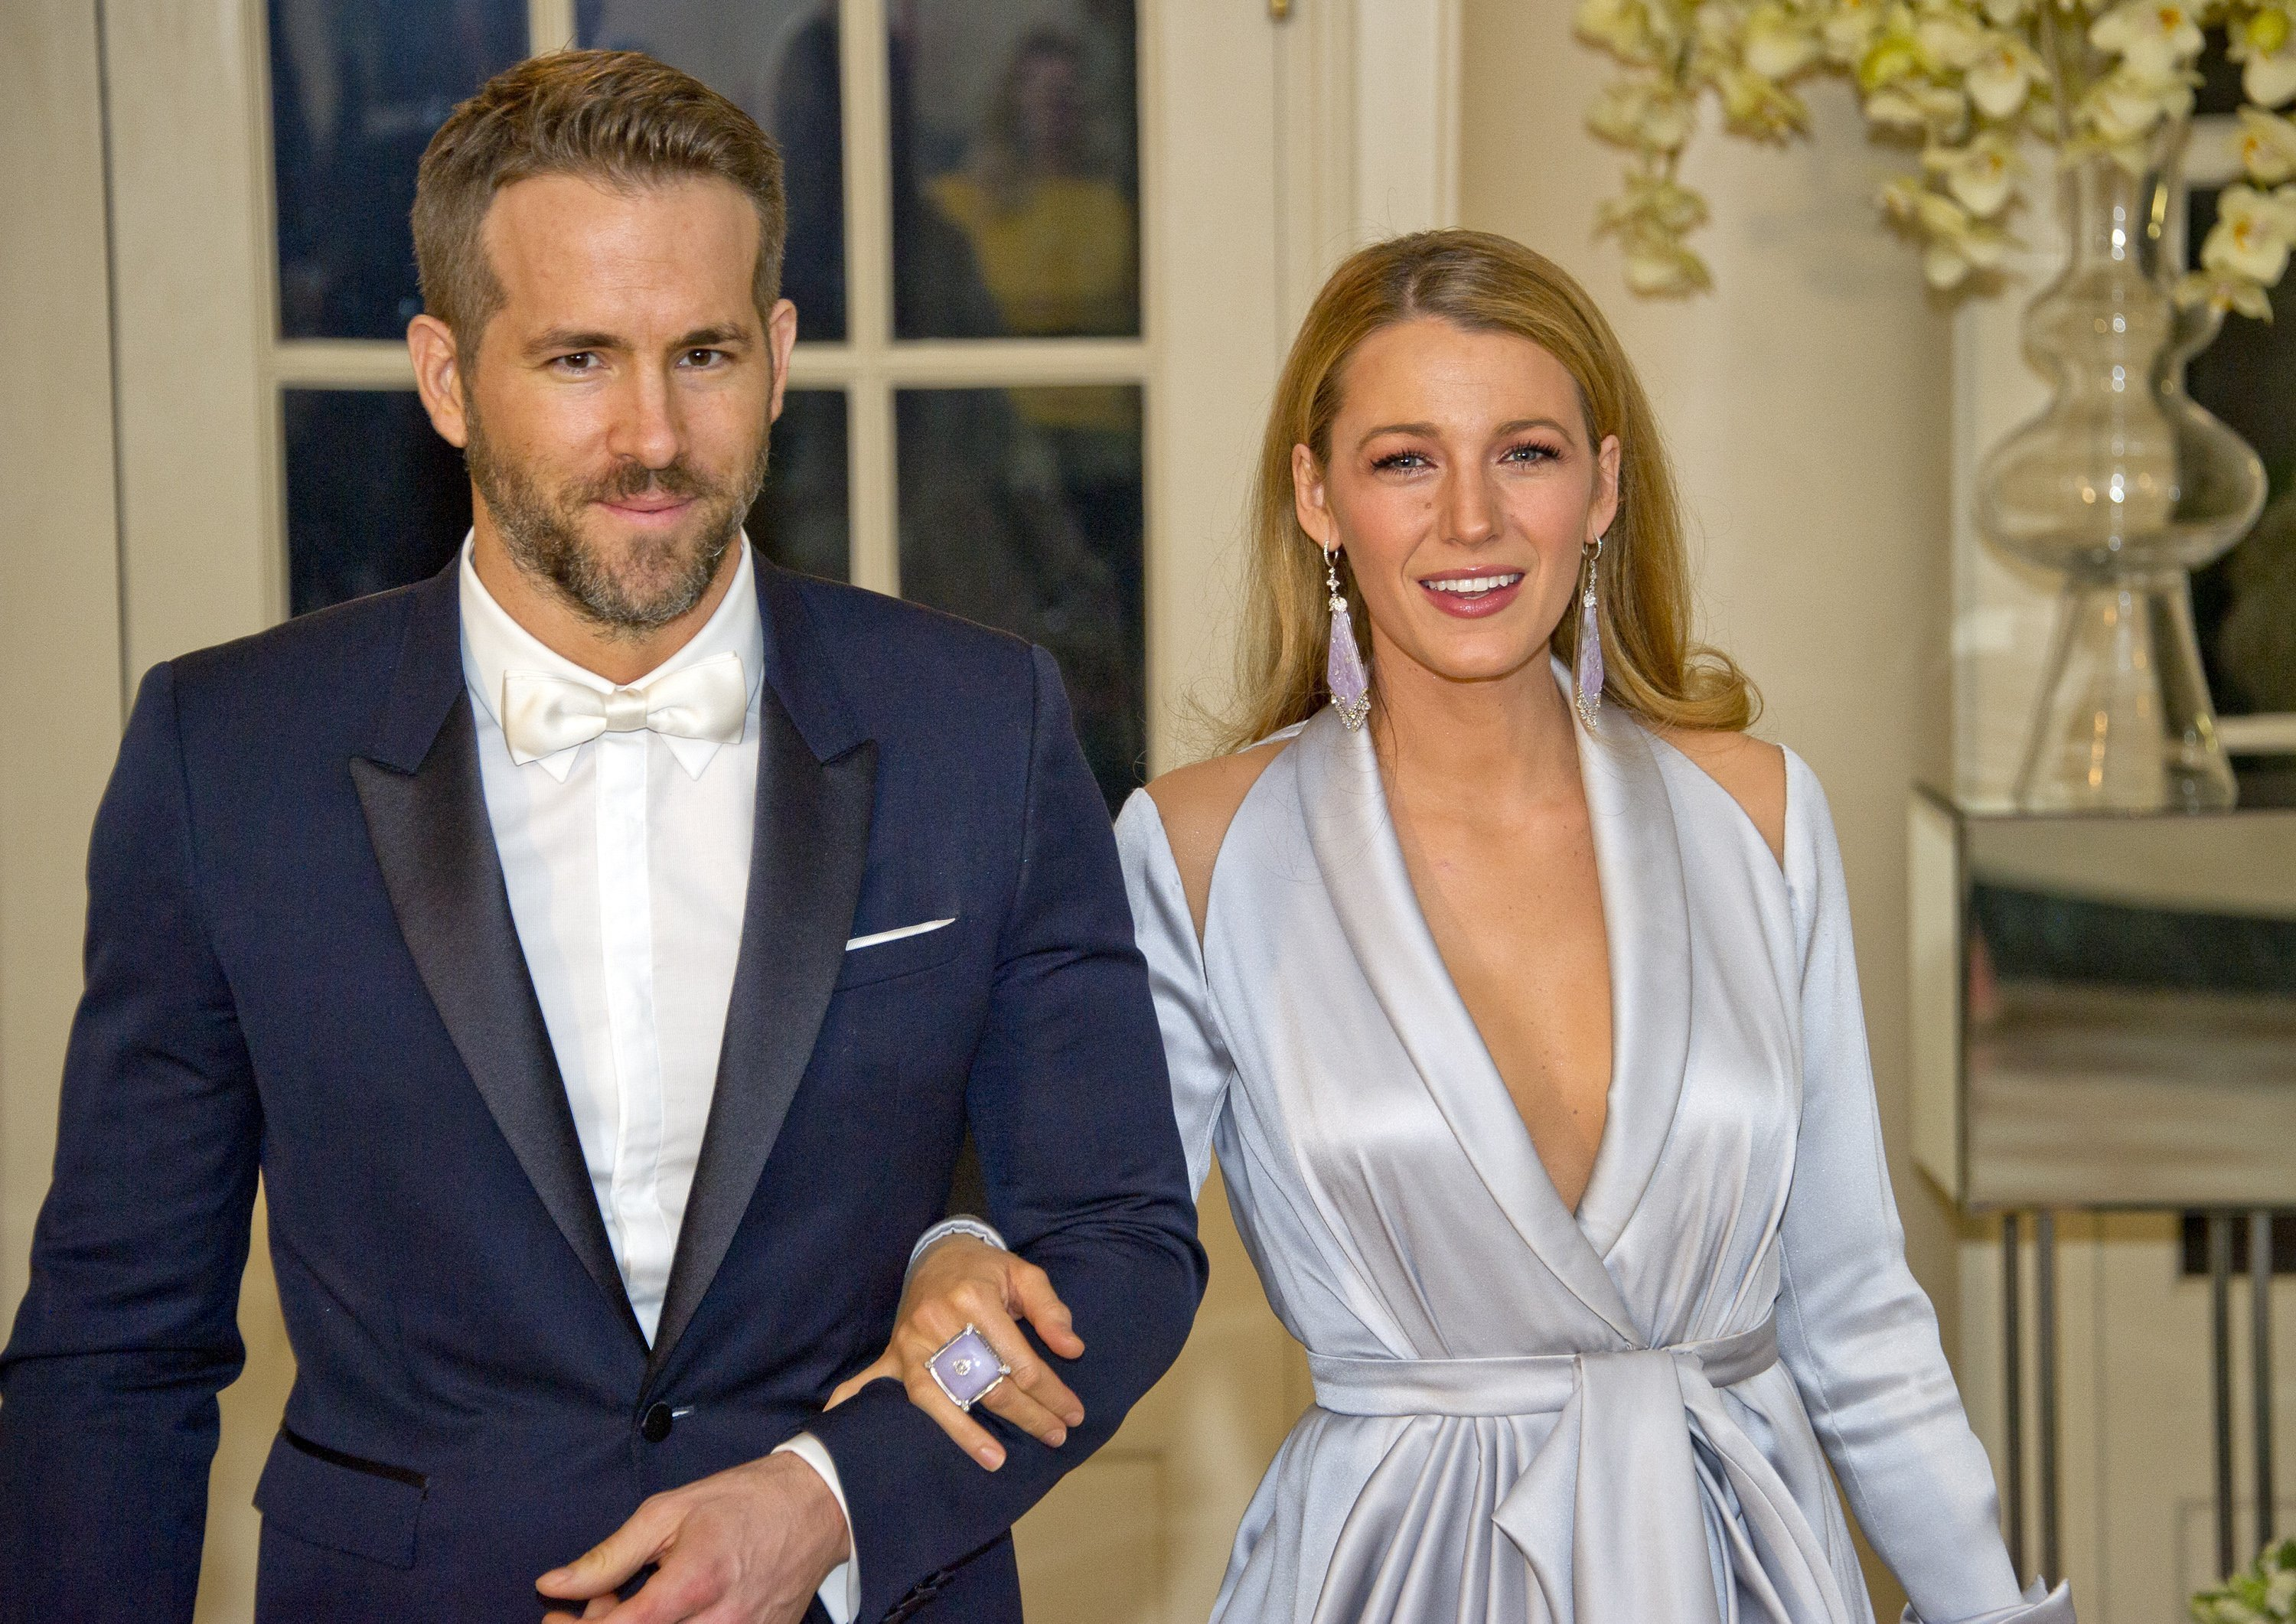 Ryan Reynolds and Blake Lively arrive for the State Dinner in honor of Prime Minister Trudeau and Mrs. Sophie Trudeau of Canada at the White House March 10, 2016, in Washington, DC. | Source: Getty Images.